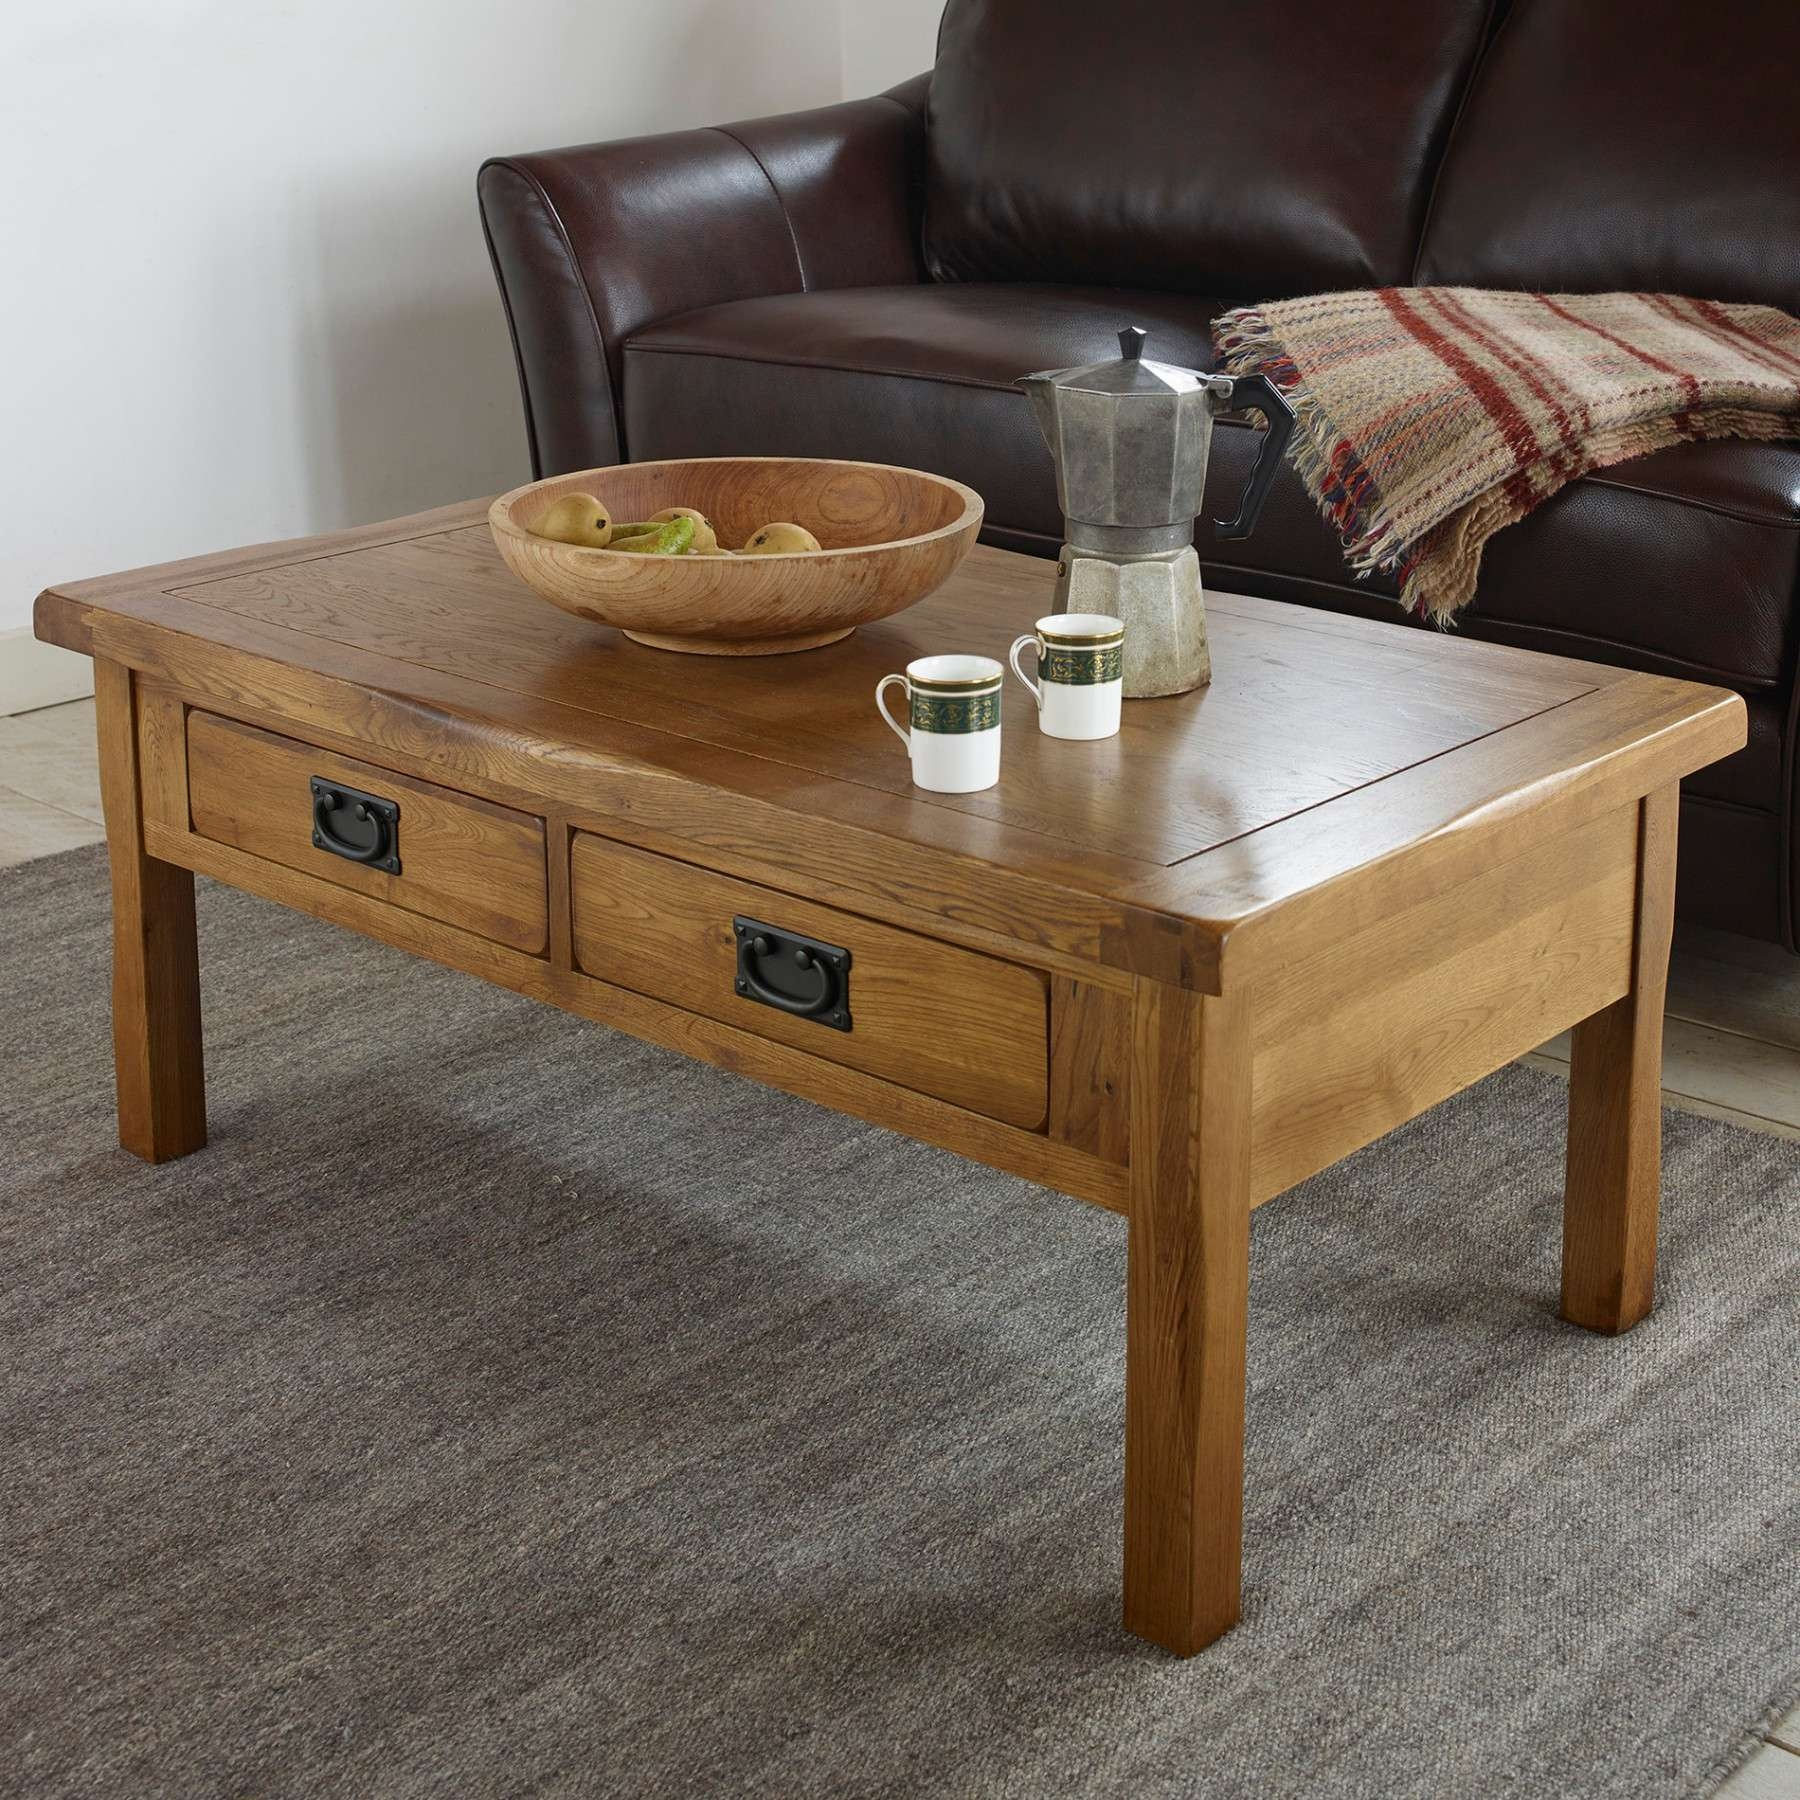 Coffee Regarding Latest Oak Coffee Table With Storage (View 3 of 20)